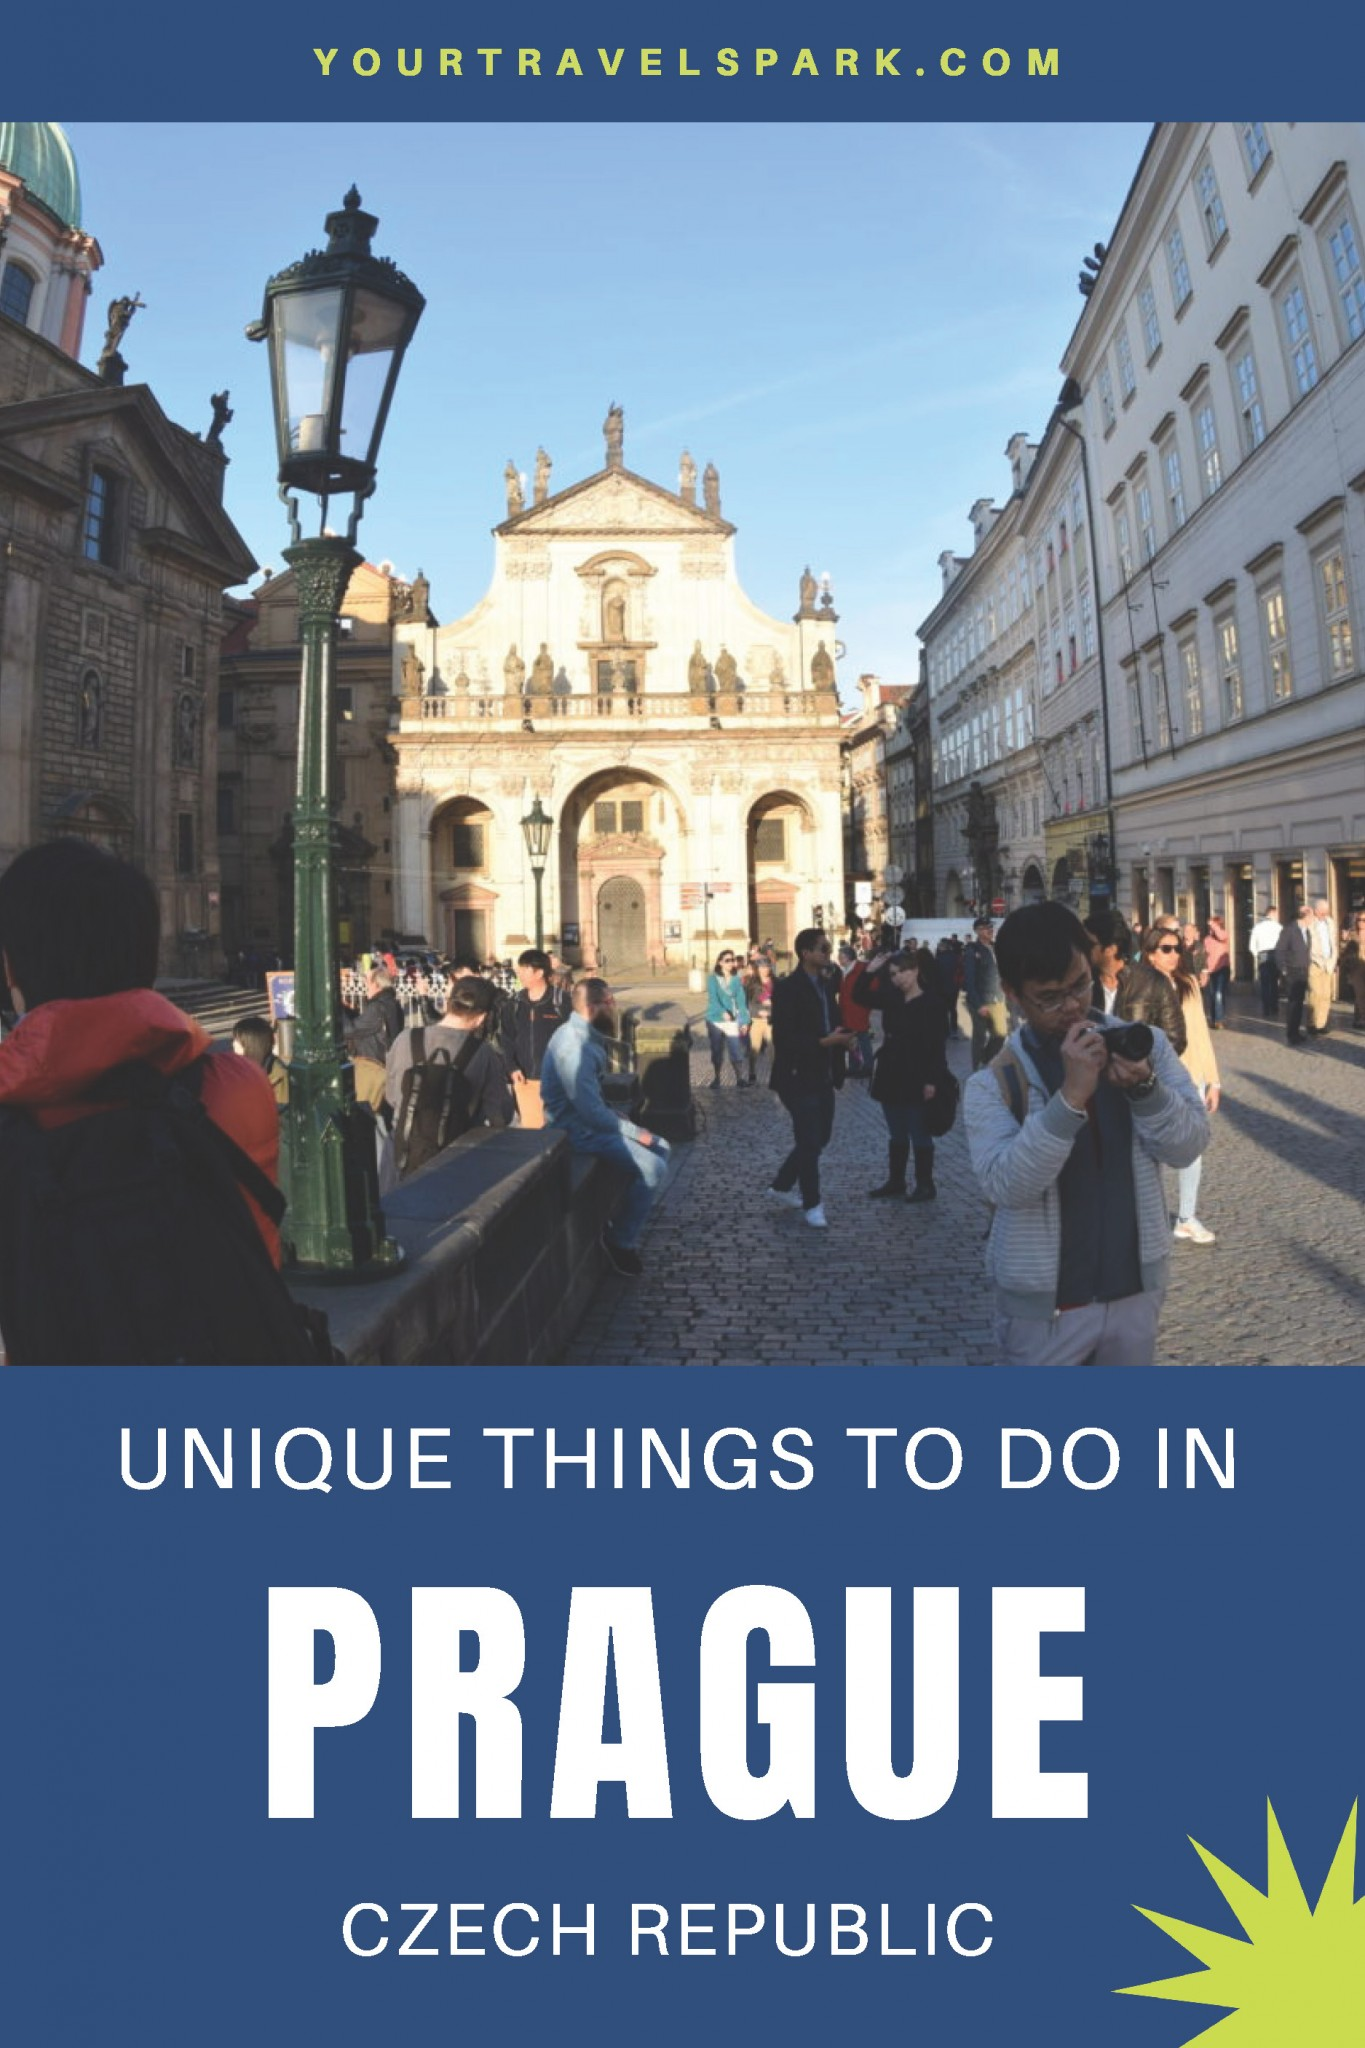 Unique things to do in Prague, Czech Republic.